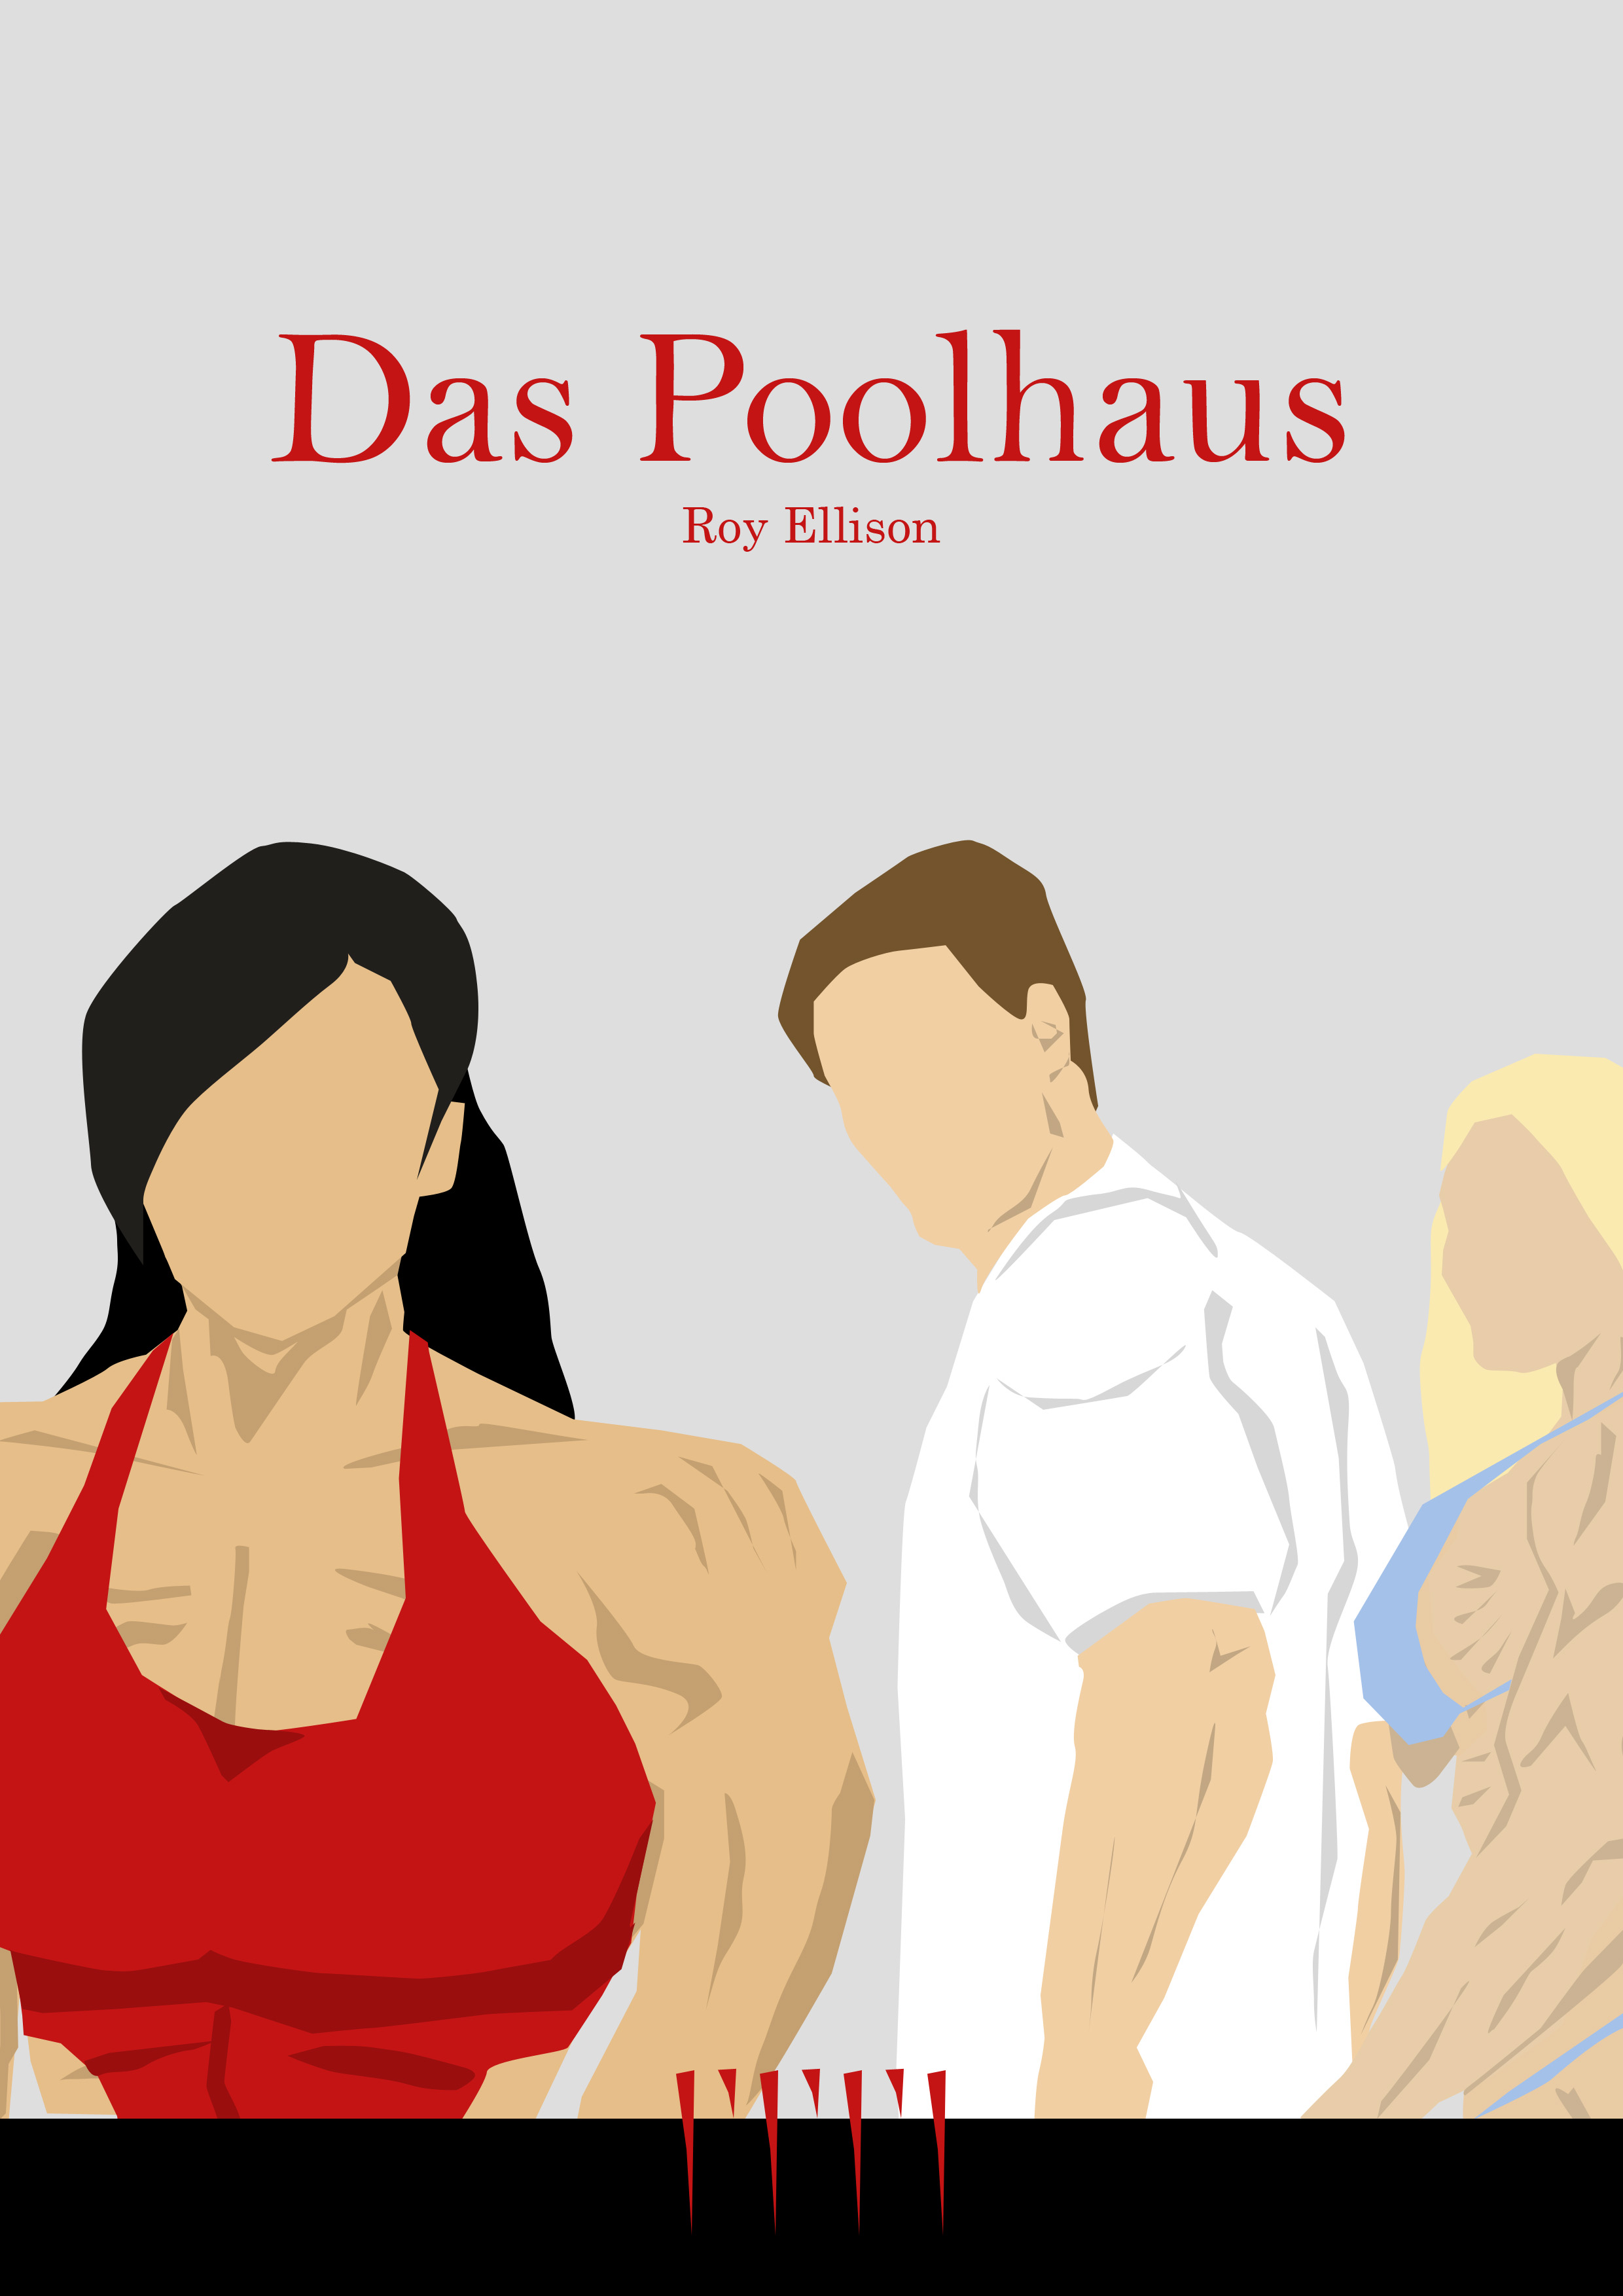 Poolhaus Das Poolhaus An Ebook By Roy Ellison